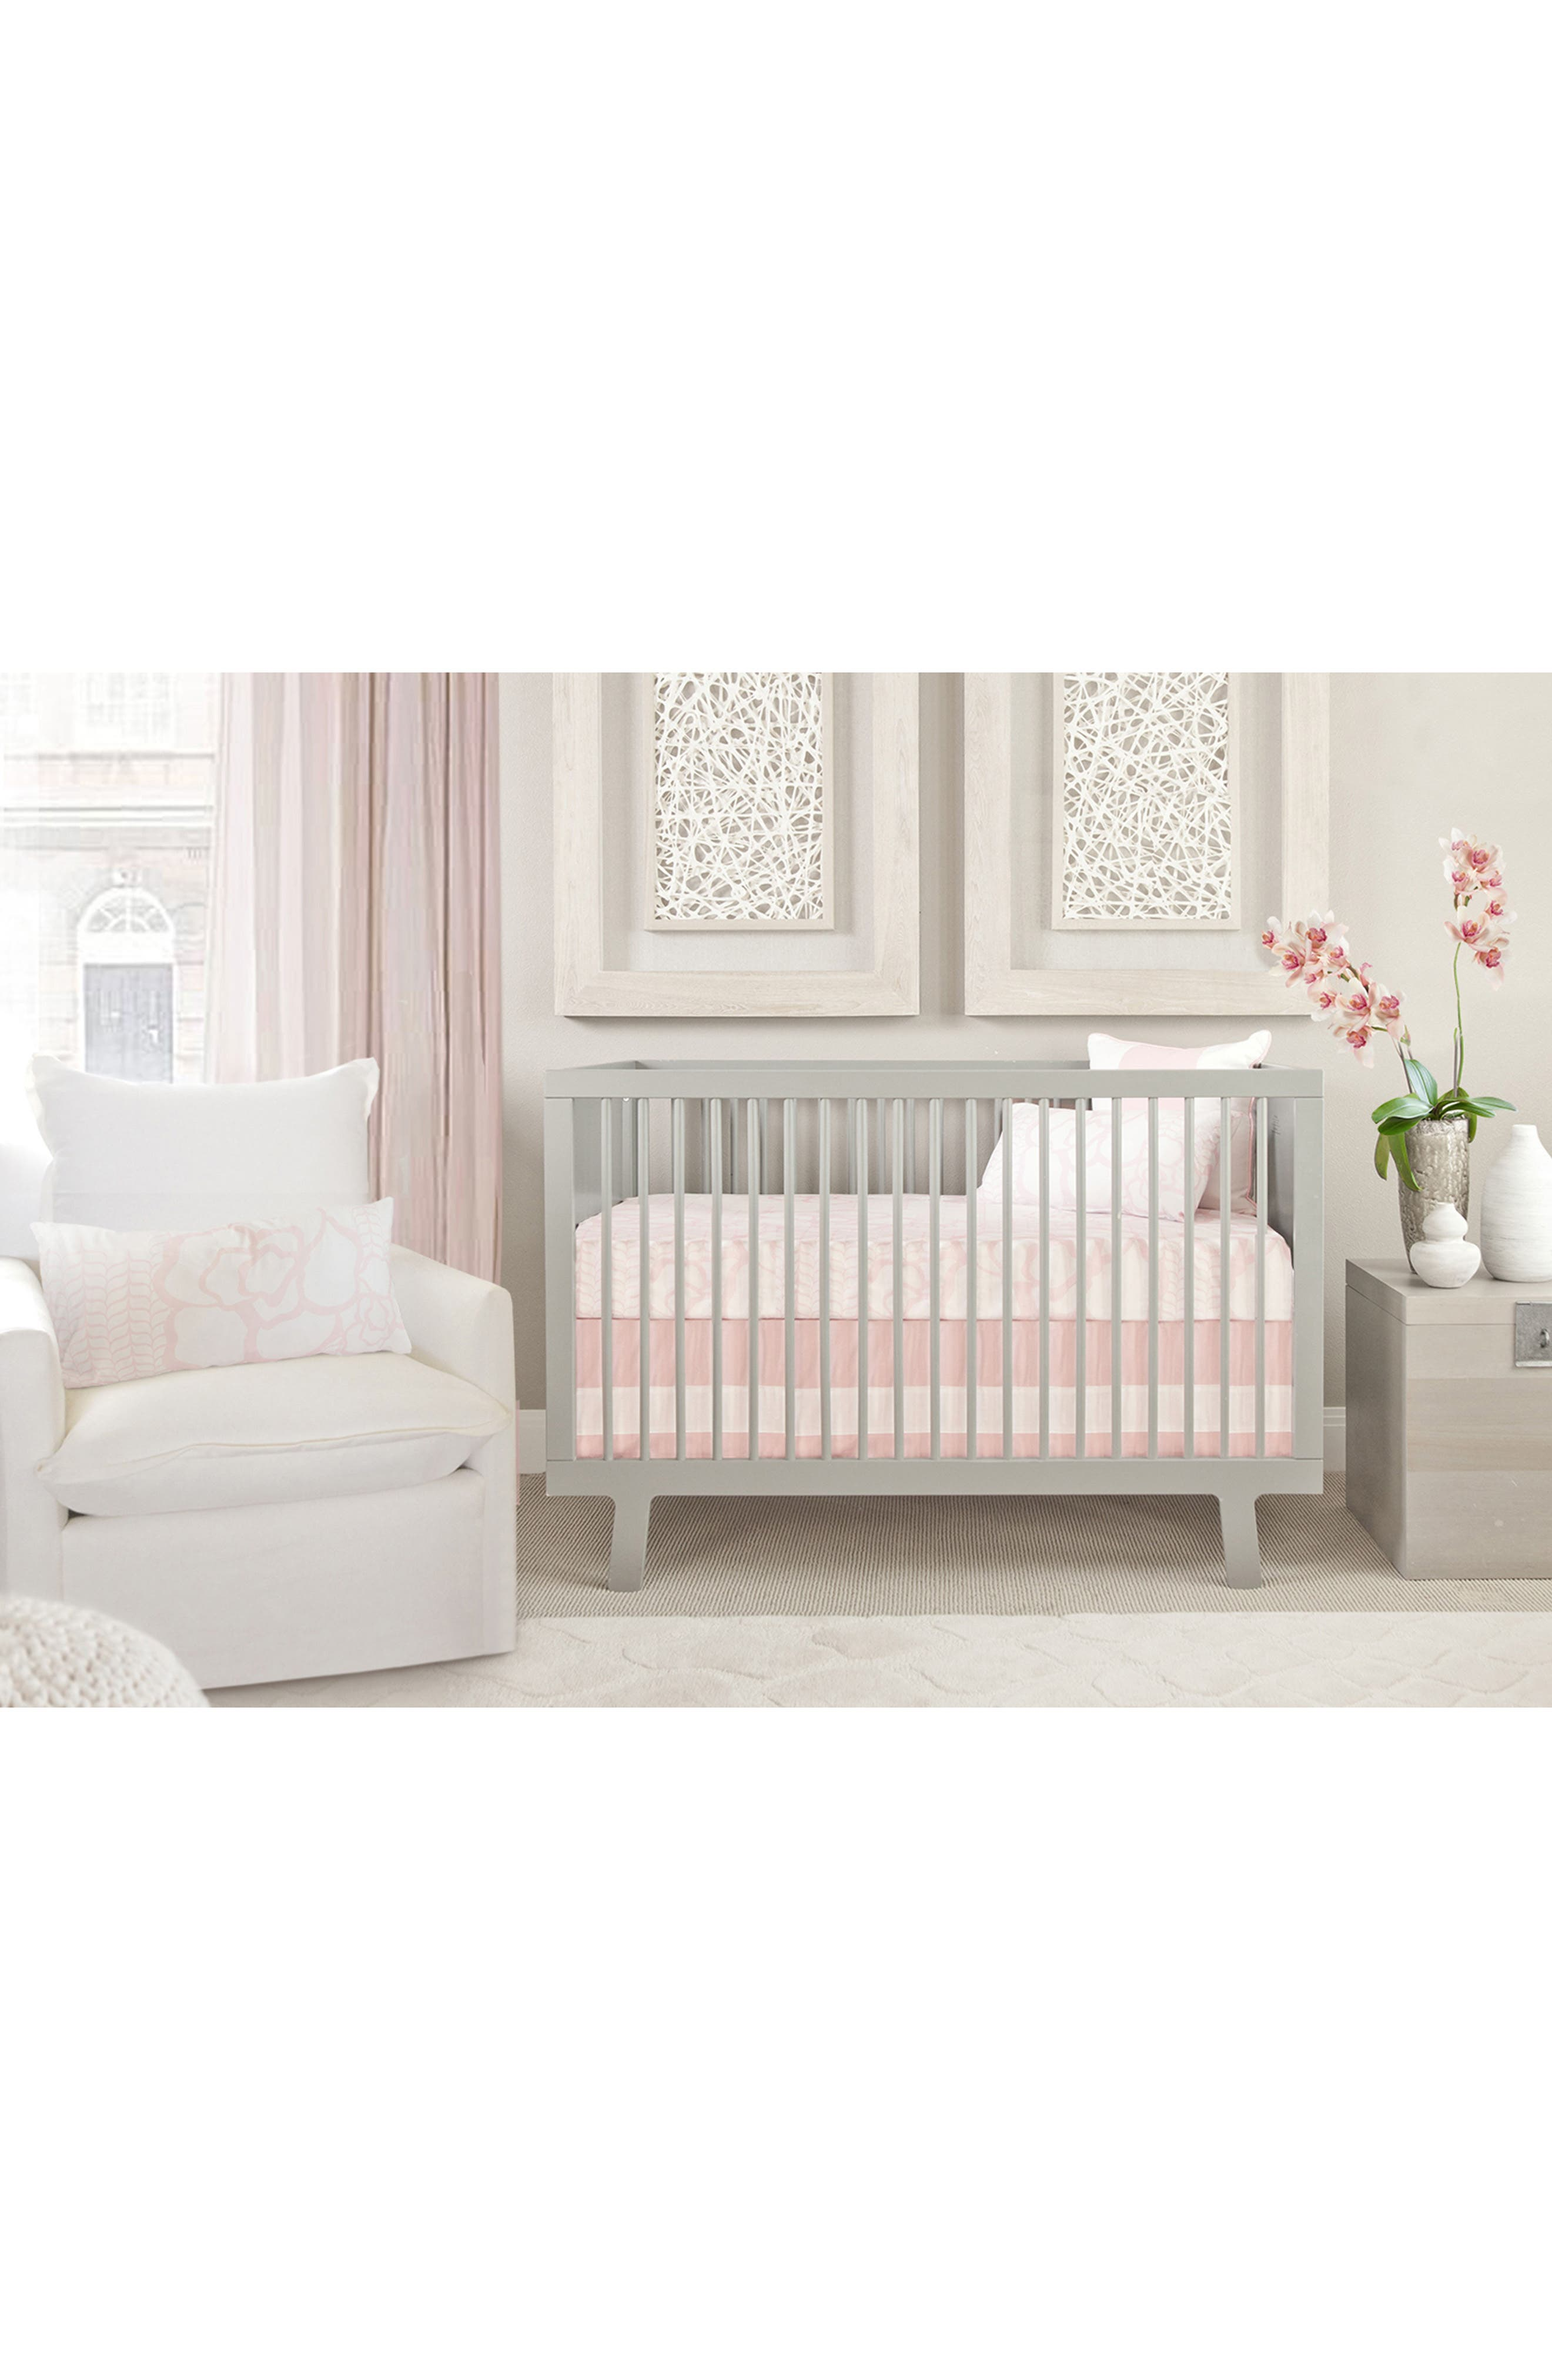 'Capri' Crib Pillow,                             Alternate thumbnail 8, color,                             650